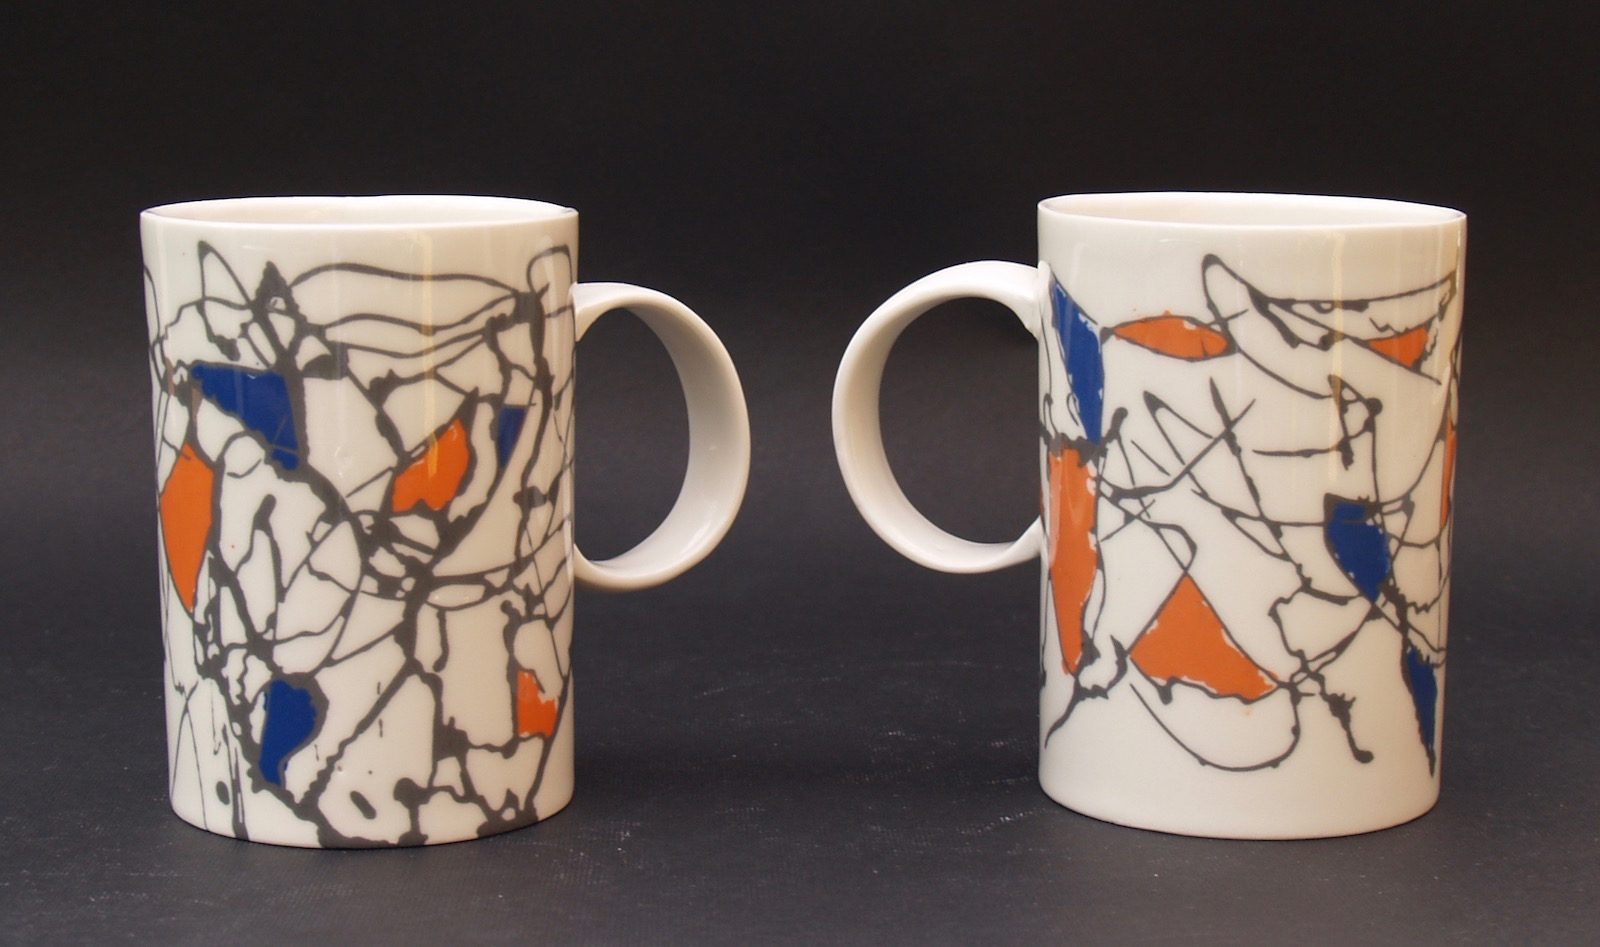 Large porcelain mugs with abstract pattern in black, orange and blue